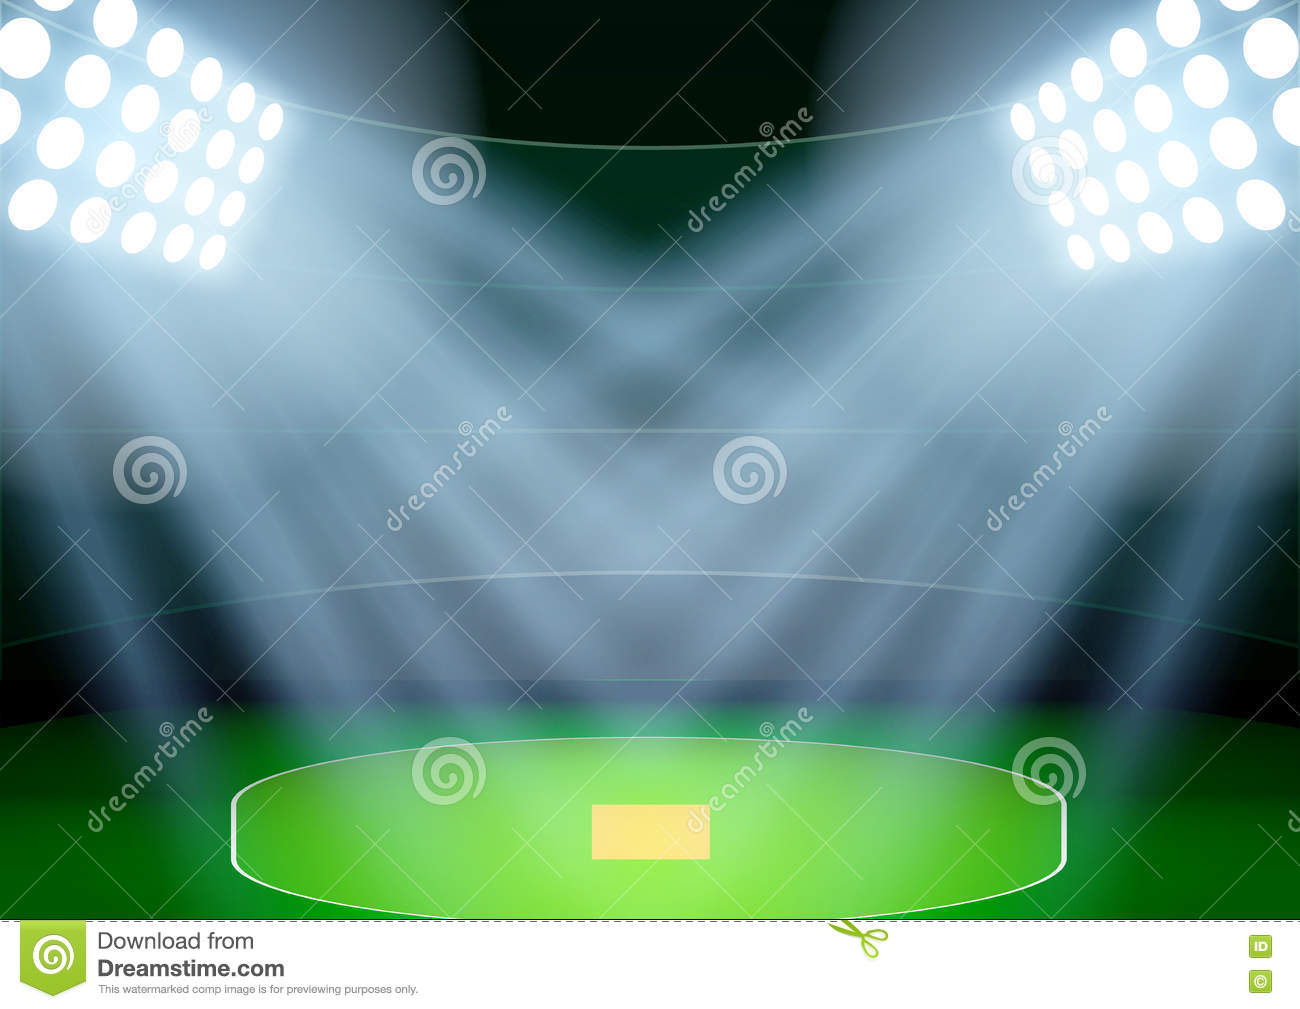 Cricket Vector Background Stock Image: Background For Posters Night Cricket Stadium In The